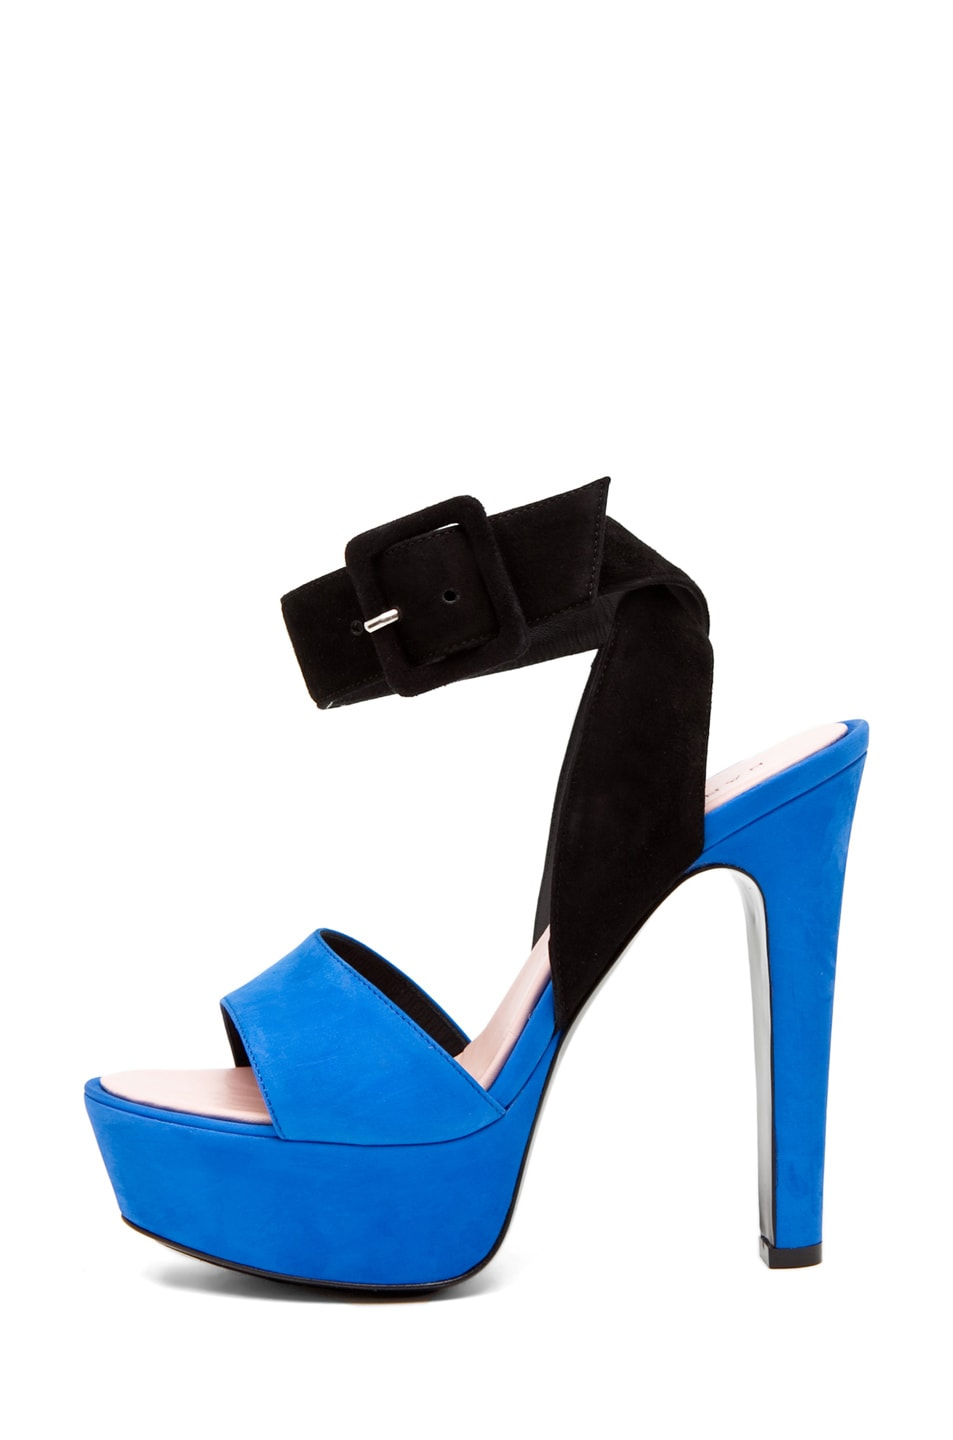 Image 1 of Barbara Bui Ankle Strap Heel Blue/Black